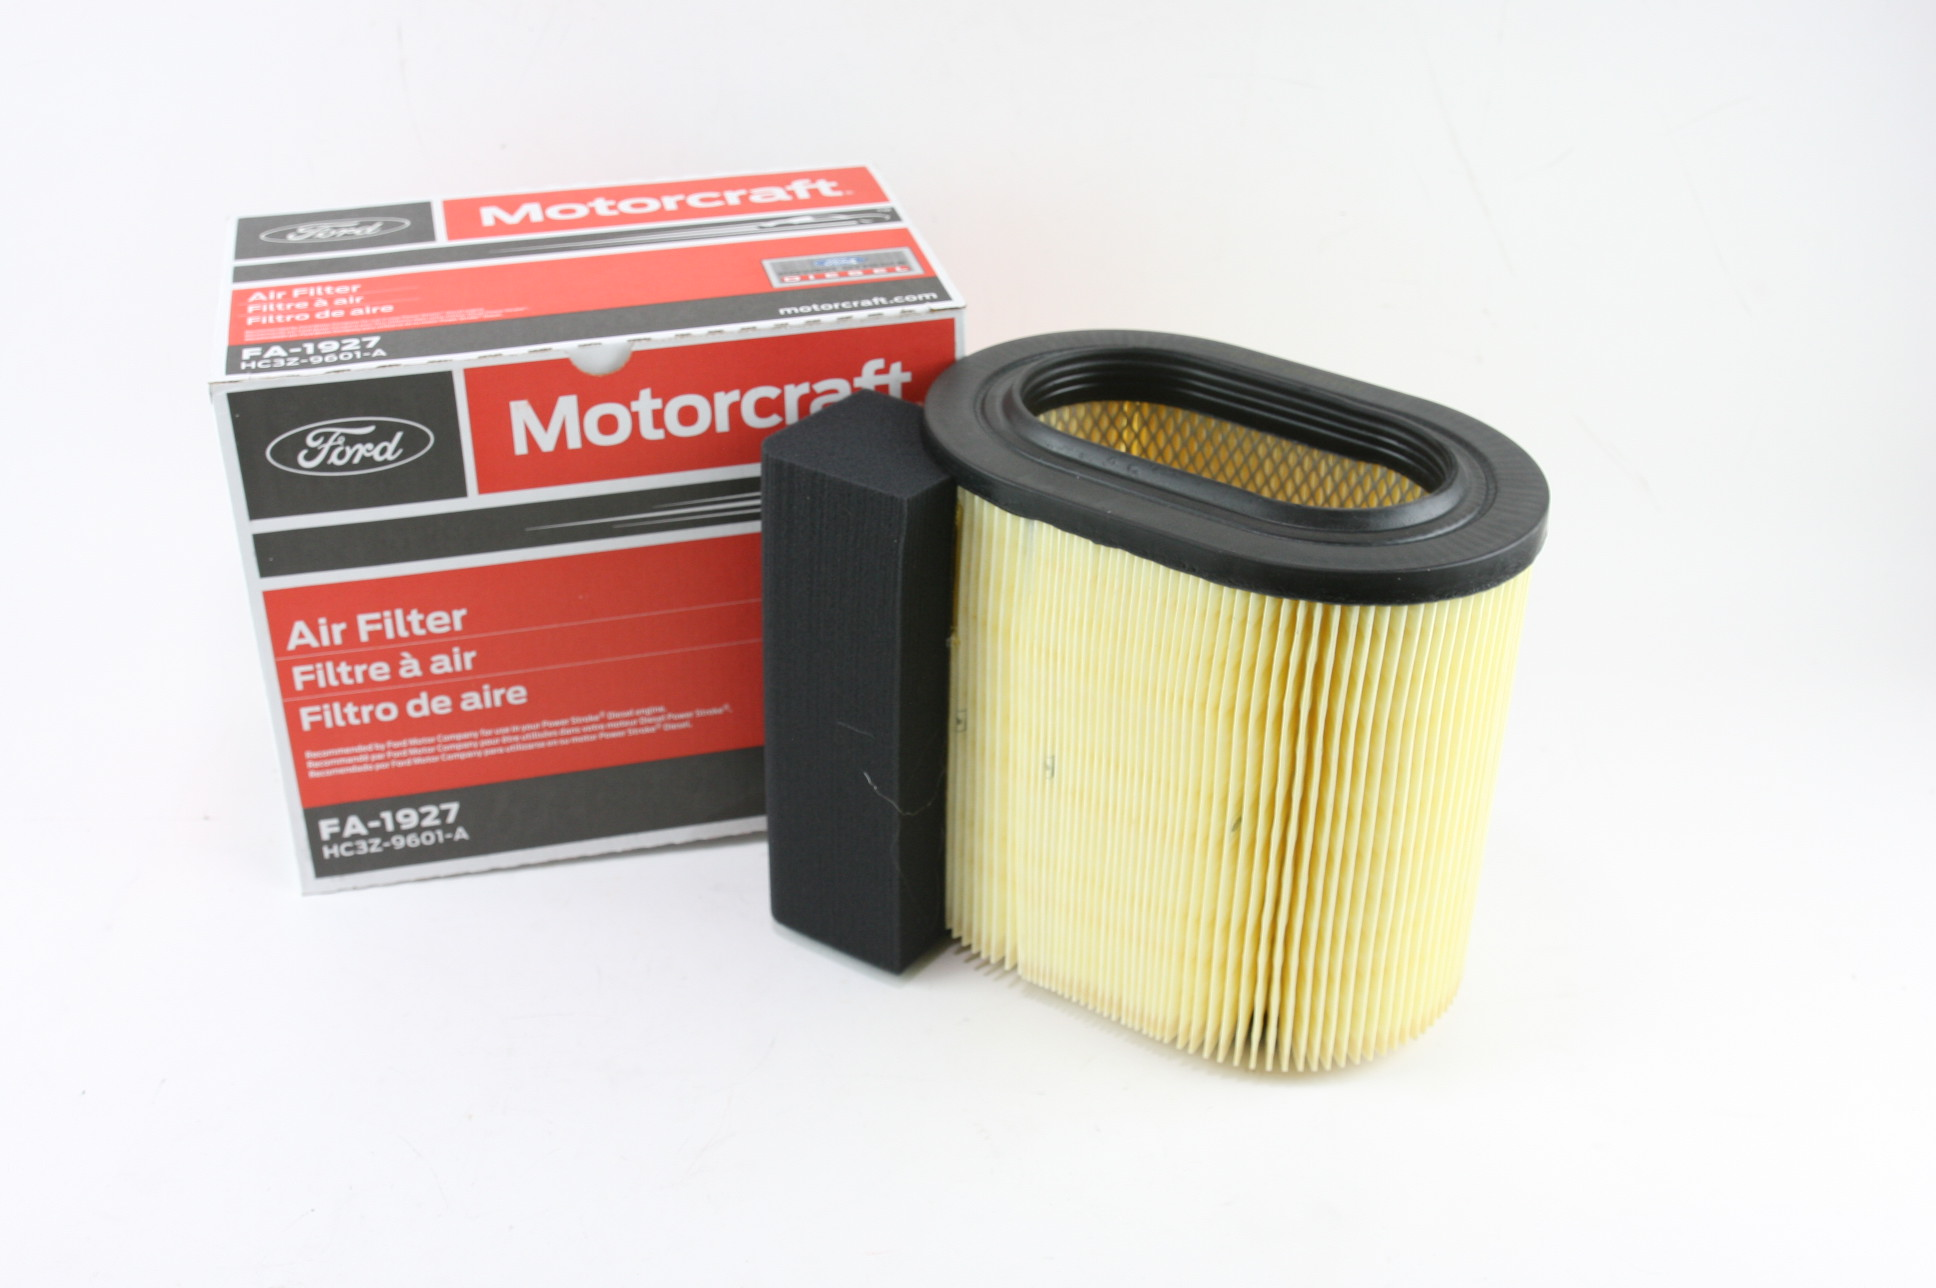 New OEM 3 Pack Motorcraft FA1927 Ford HC3Z9601A Powerstroke Diesel Air Filter - image 8